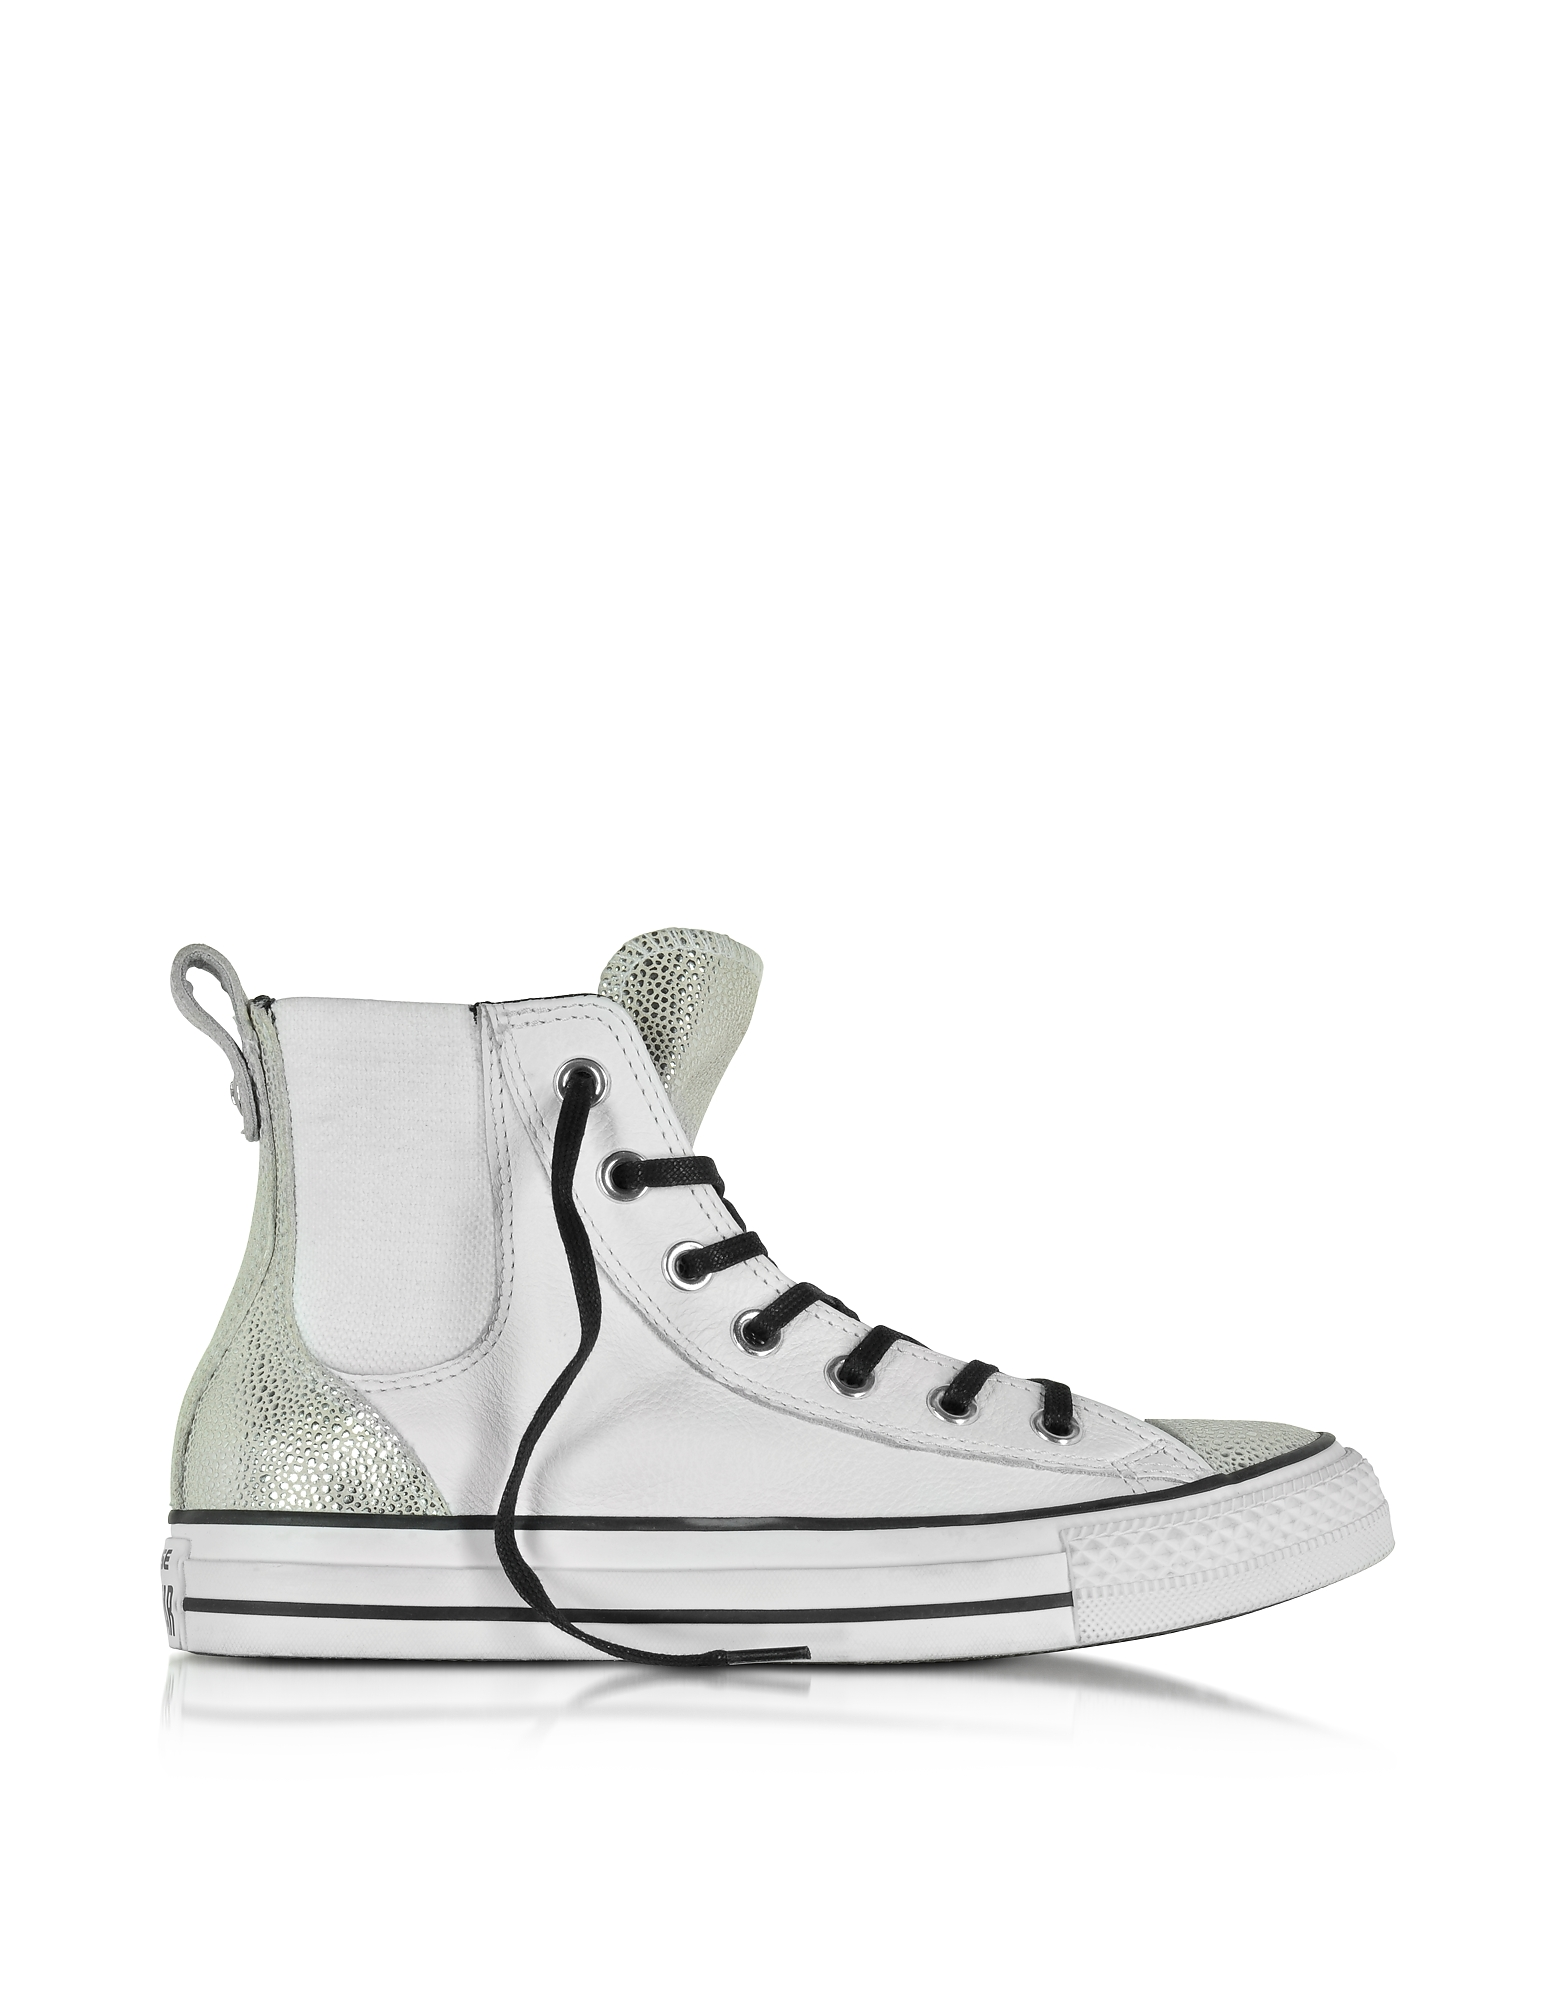 Converse Limited Edition All Star - ������� ����� � ����������� ������� ���� �� ���� �����